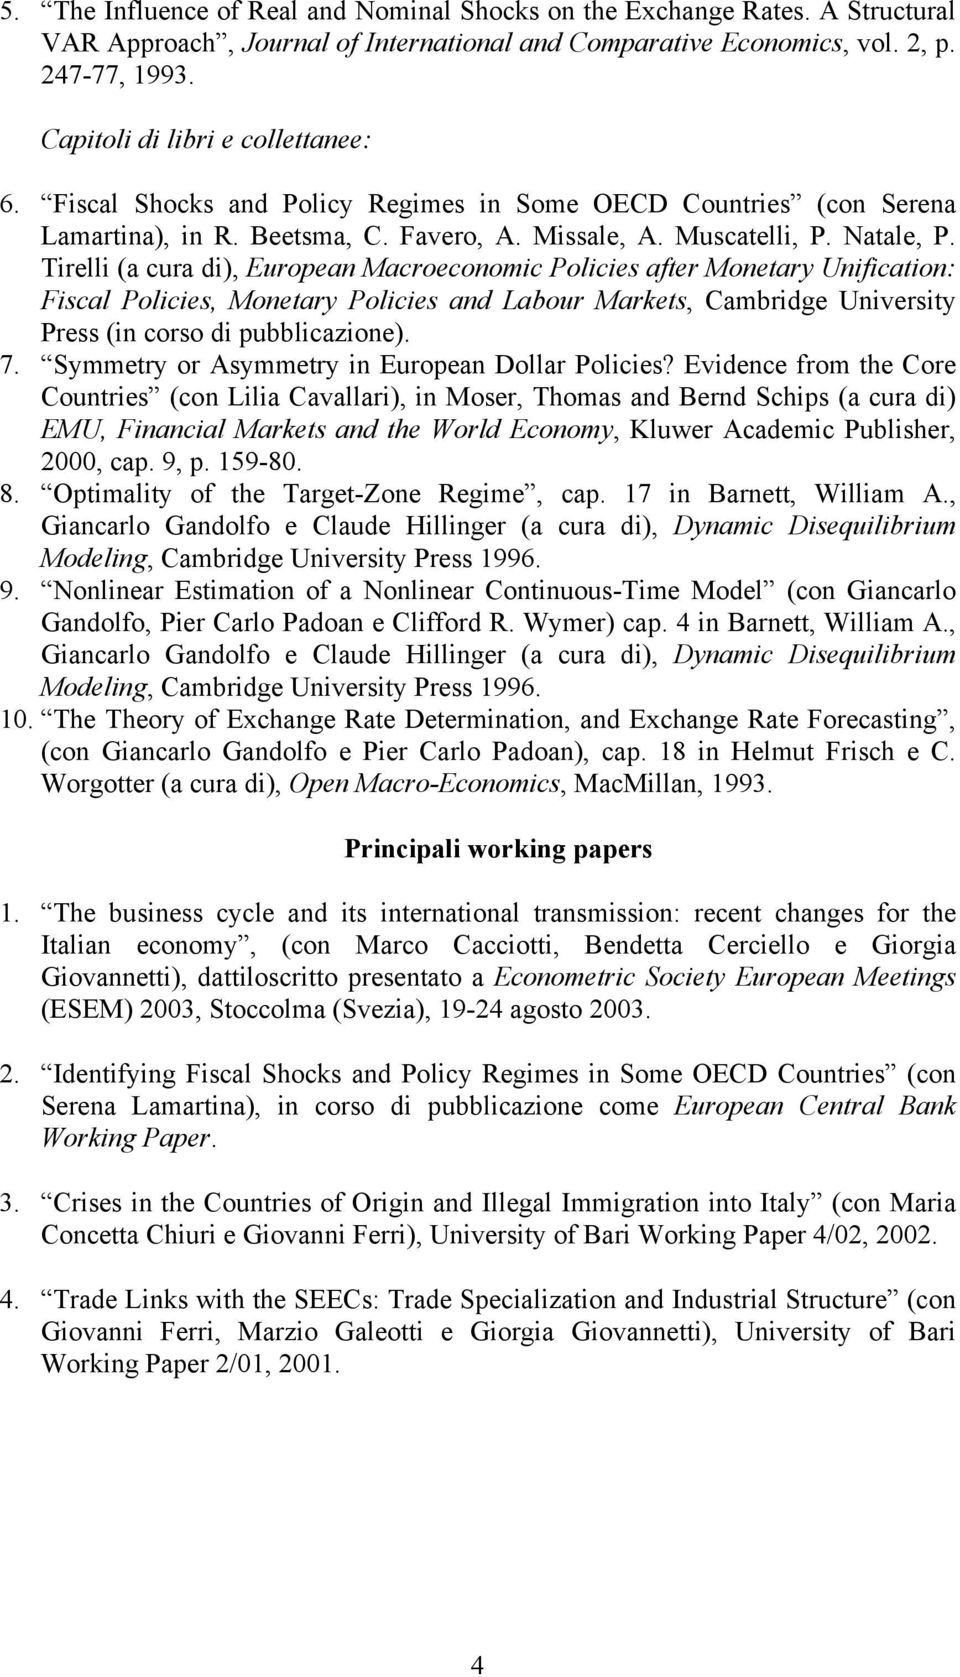 Tirelli (a cura di), European Macroeconomic Policies after Monetary Unification: Fiscal Policies, Monetary Policies and Labour Markets, Cambridge University Press (in corso di pubblicazione). 7.